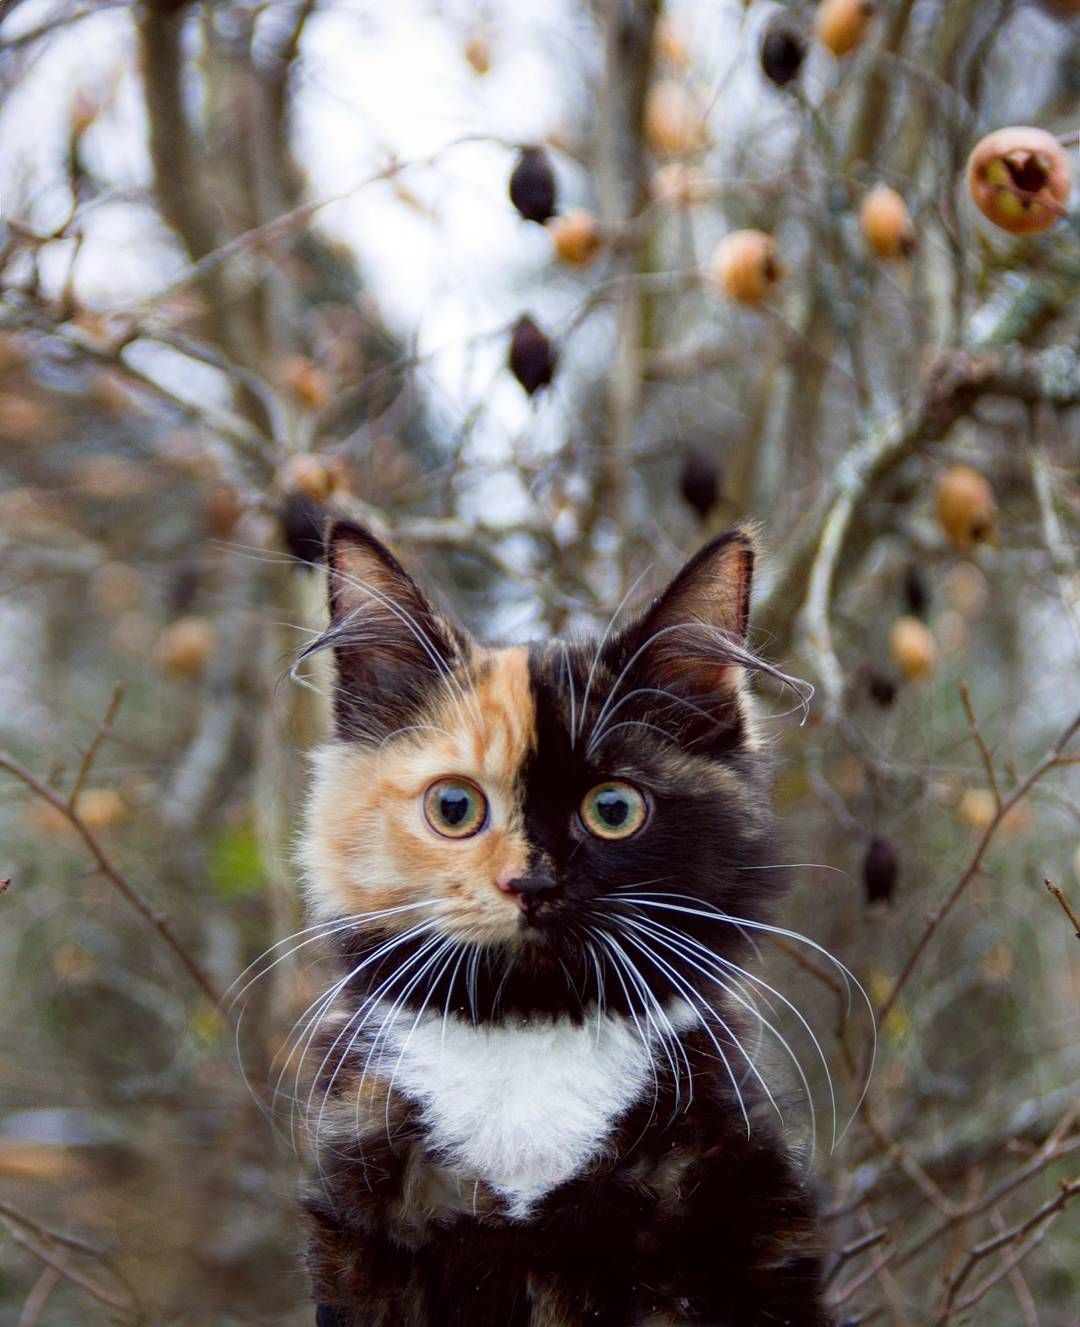 A Tortoiseshell Calico Cat Whose Adorable Face is